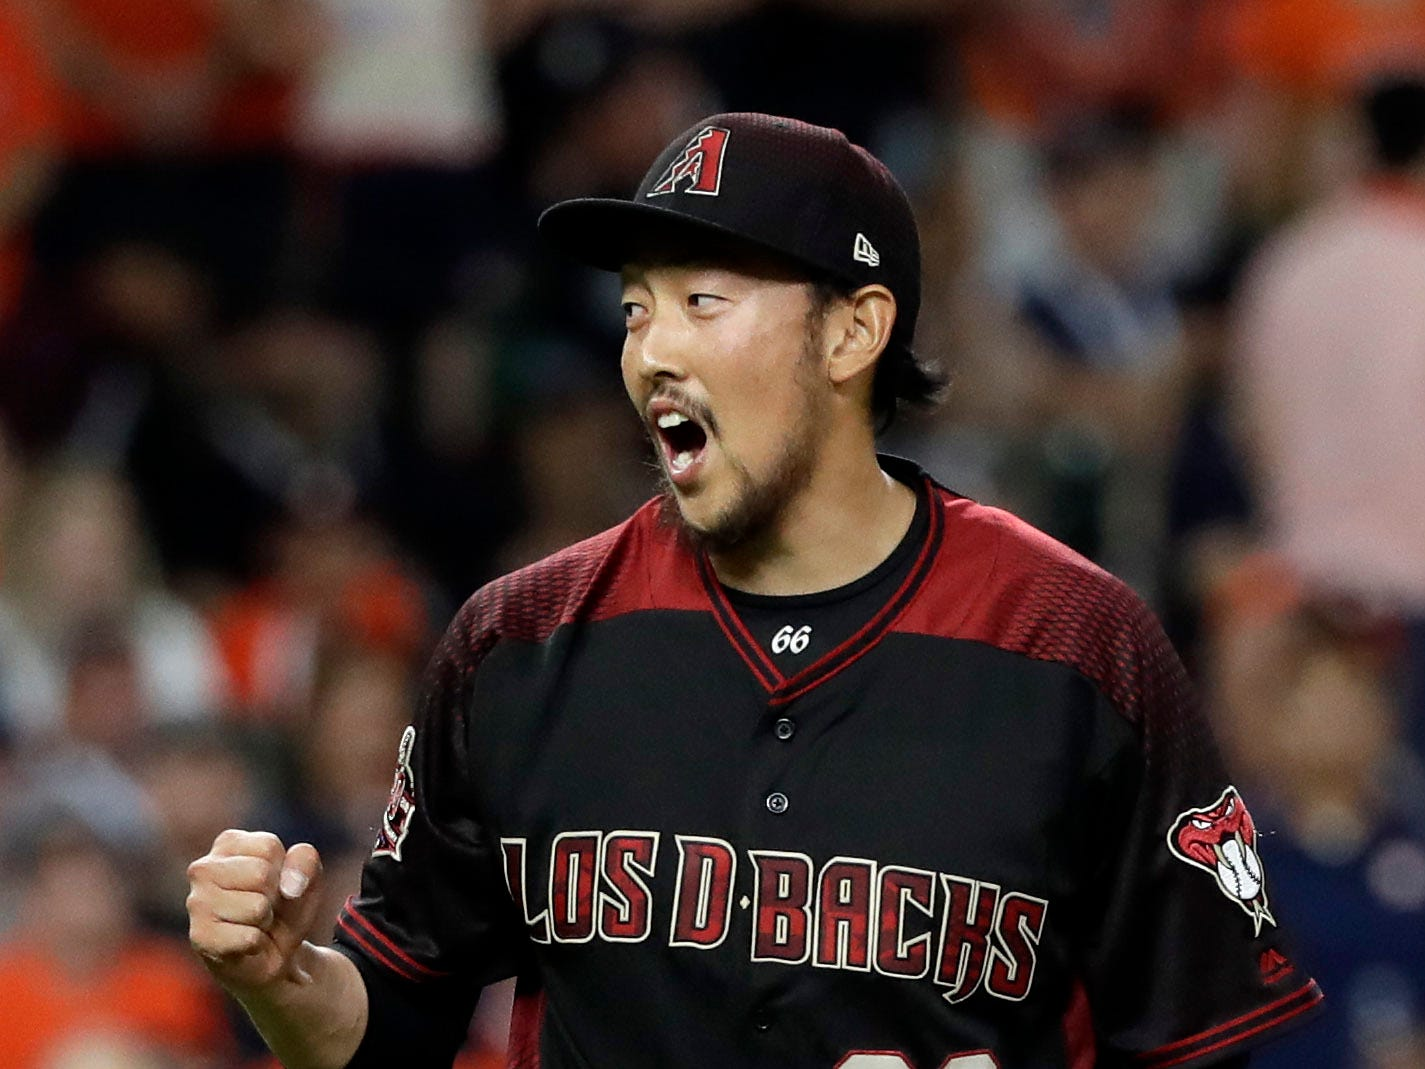 Arizona Diamondbacks relief pitcher Yoshihisa Hirano (66) reacts after the final out in the ninth inning of a baseball game against the Houston Astros Friday, Sept. 14, 2018, in Houston. The Diamondbacks won 4-2. (AP Photo/David J. Phillip)